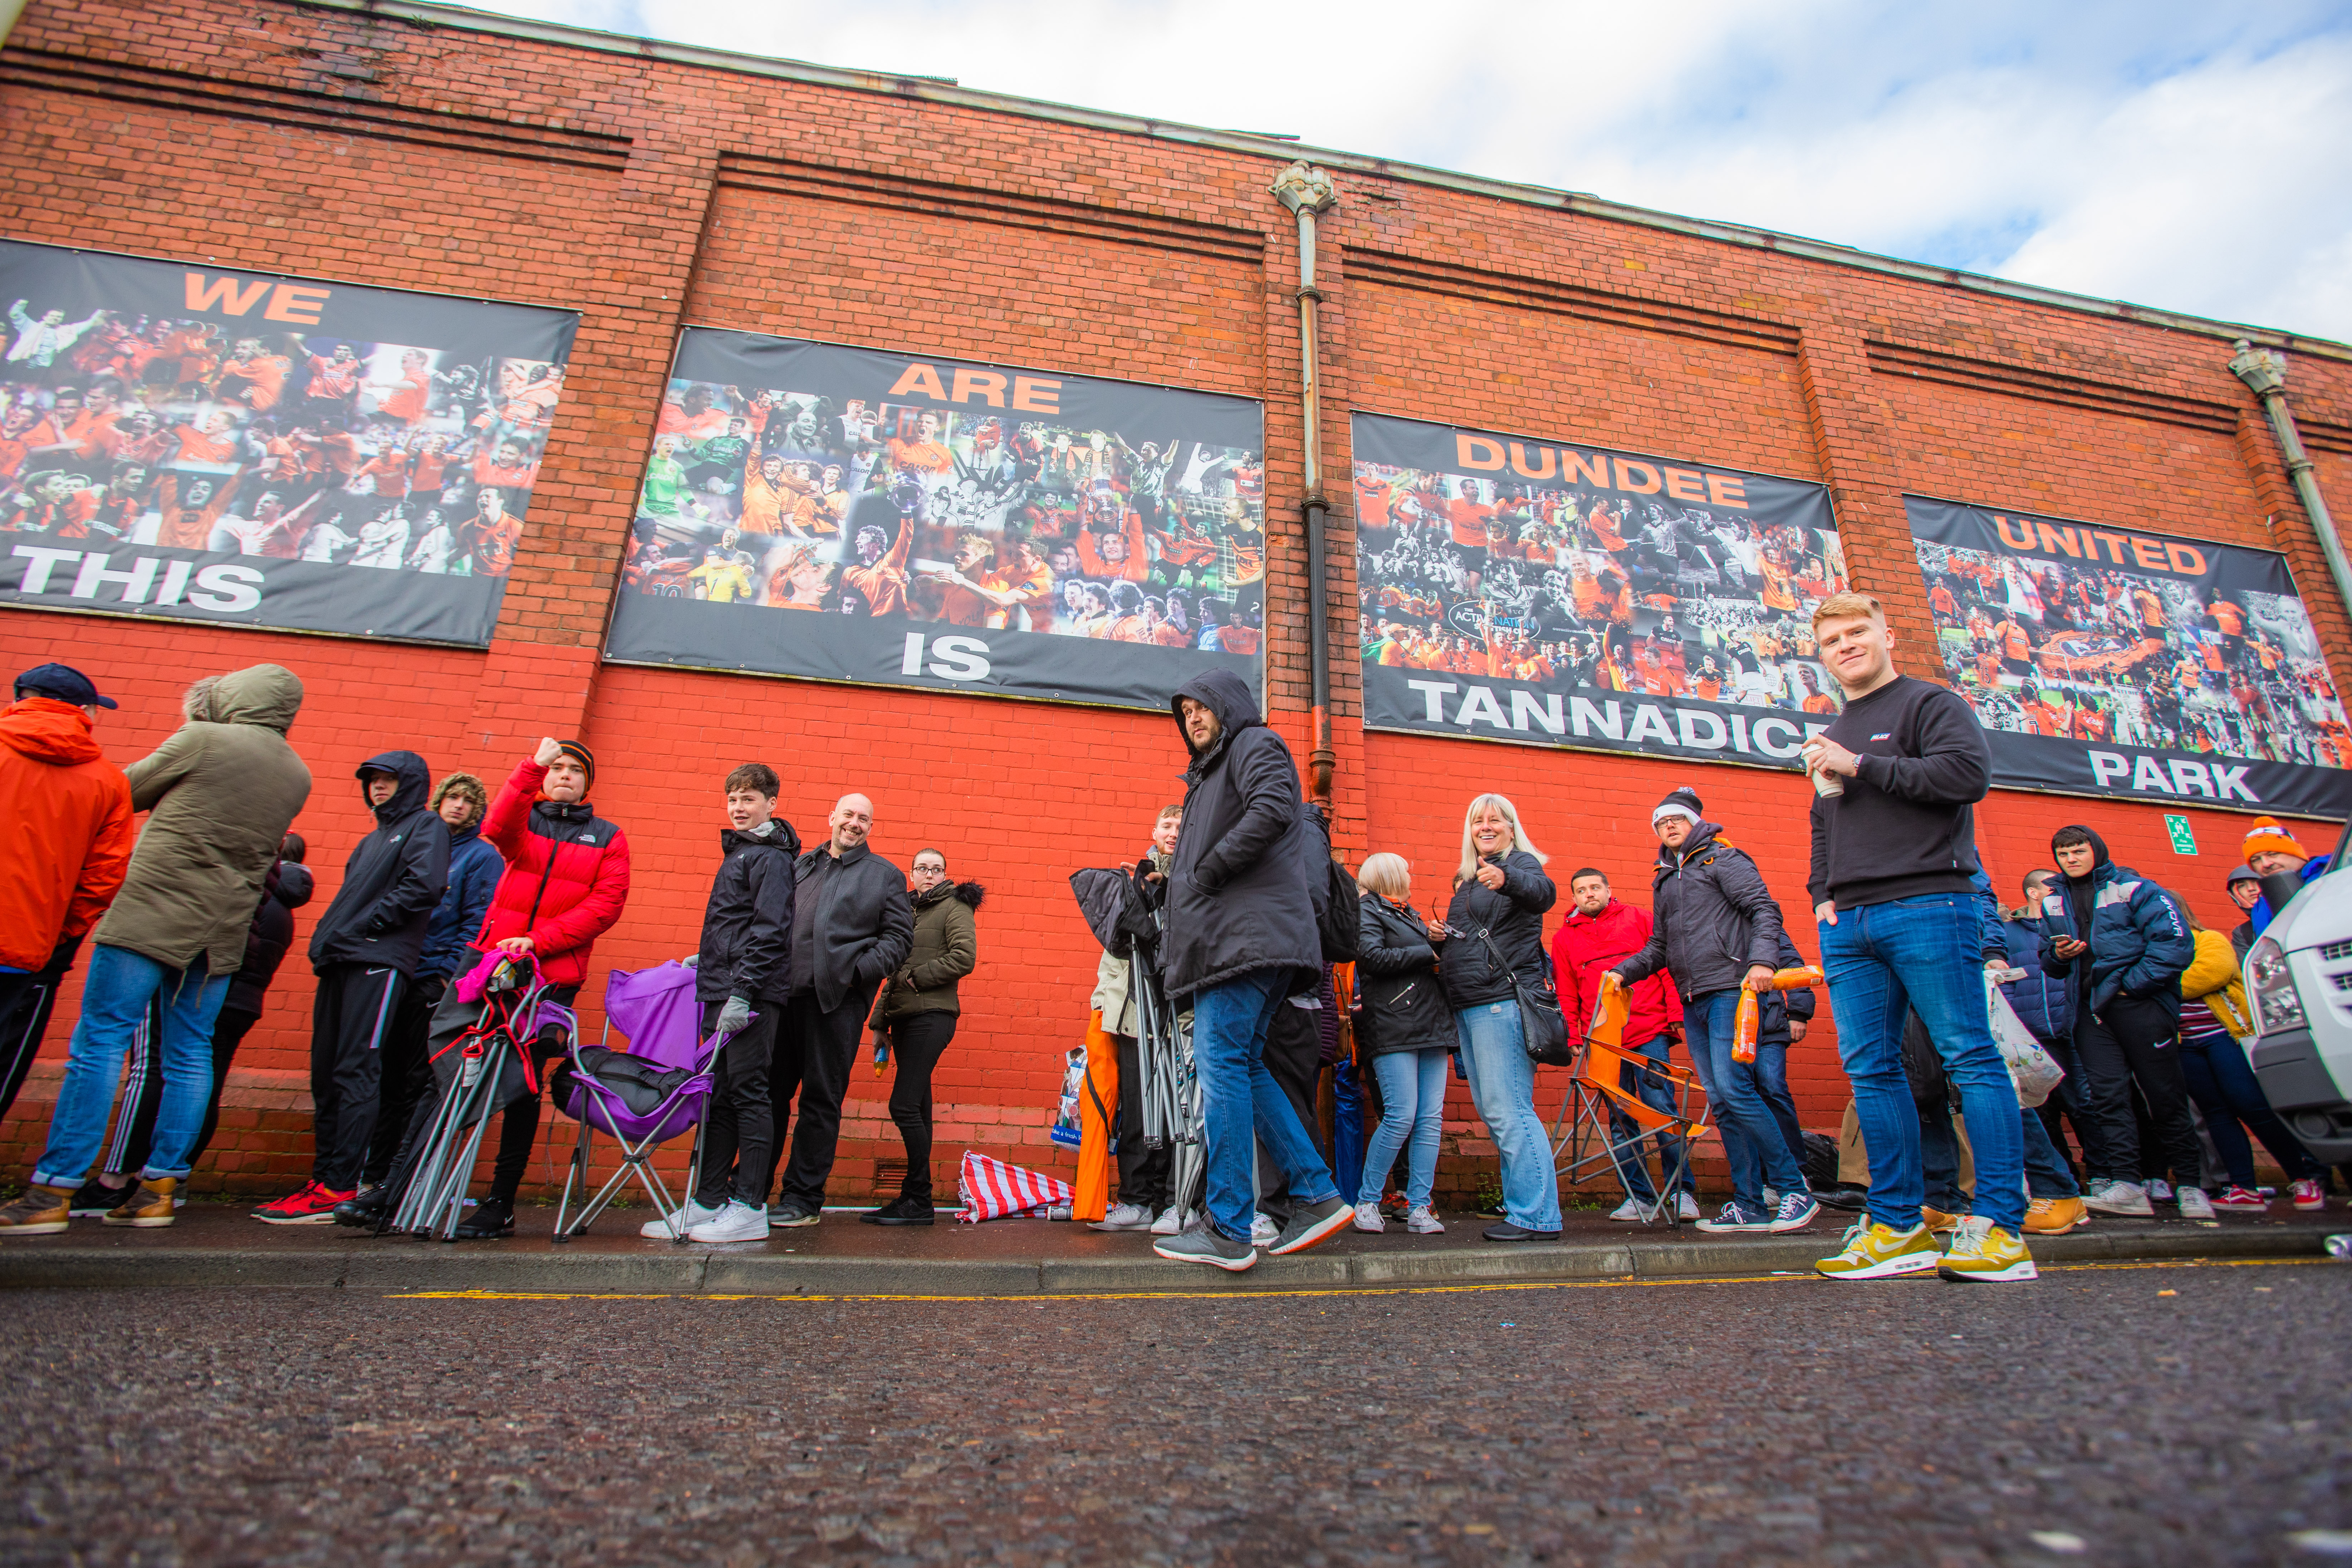 There were queues of hundreds on Monday night into Tuesday morning, as people looked to secure tickets for Sunday's game in Paisley.